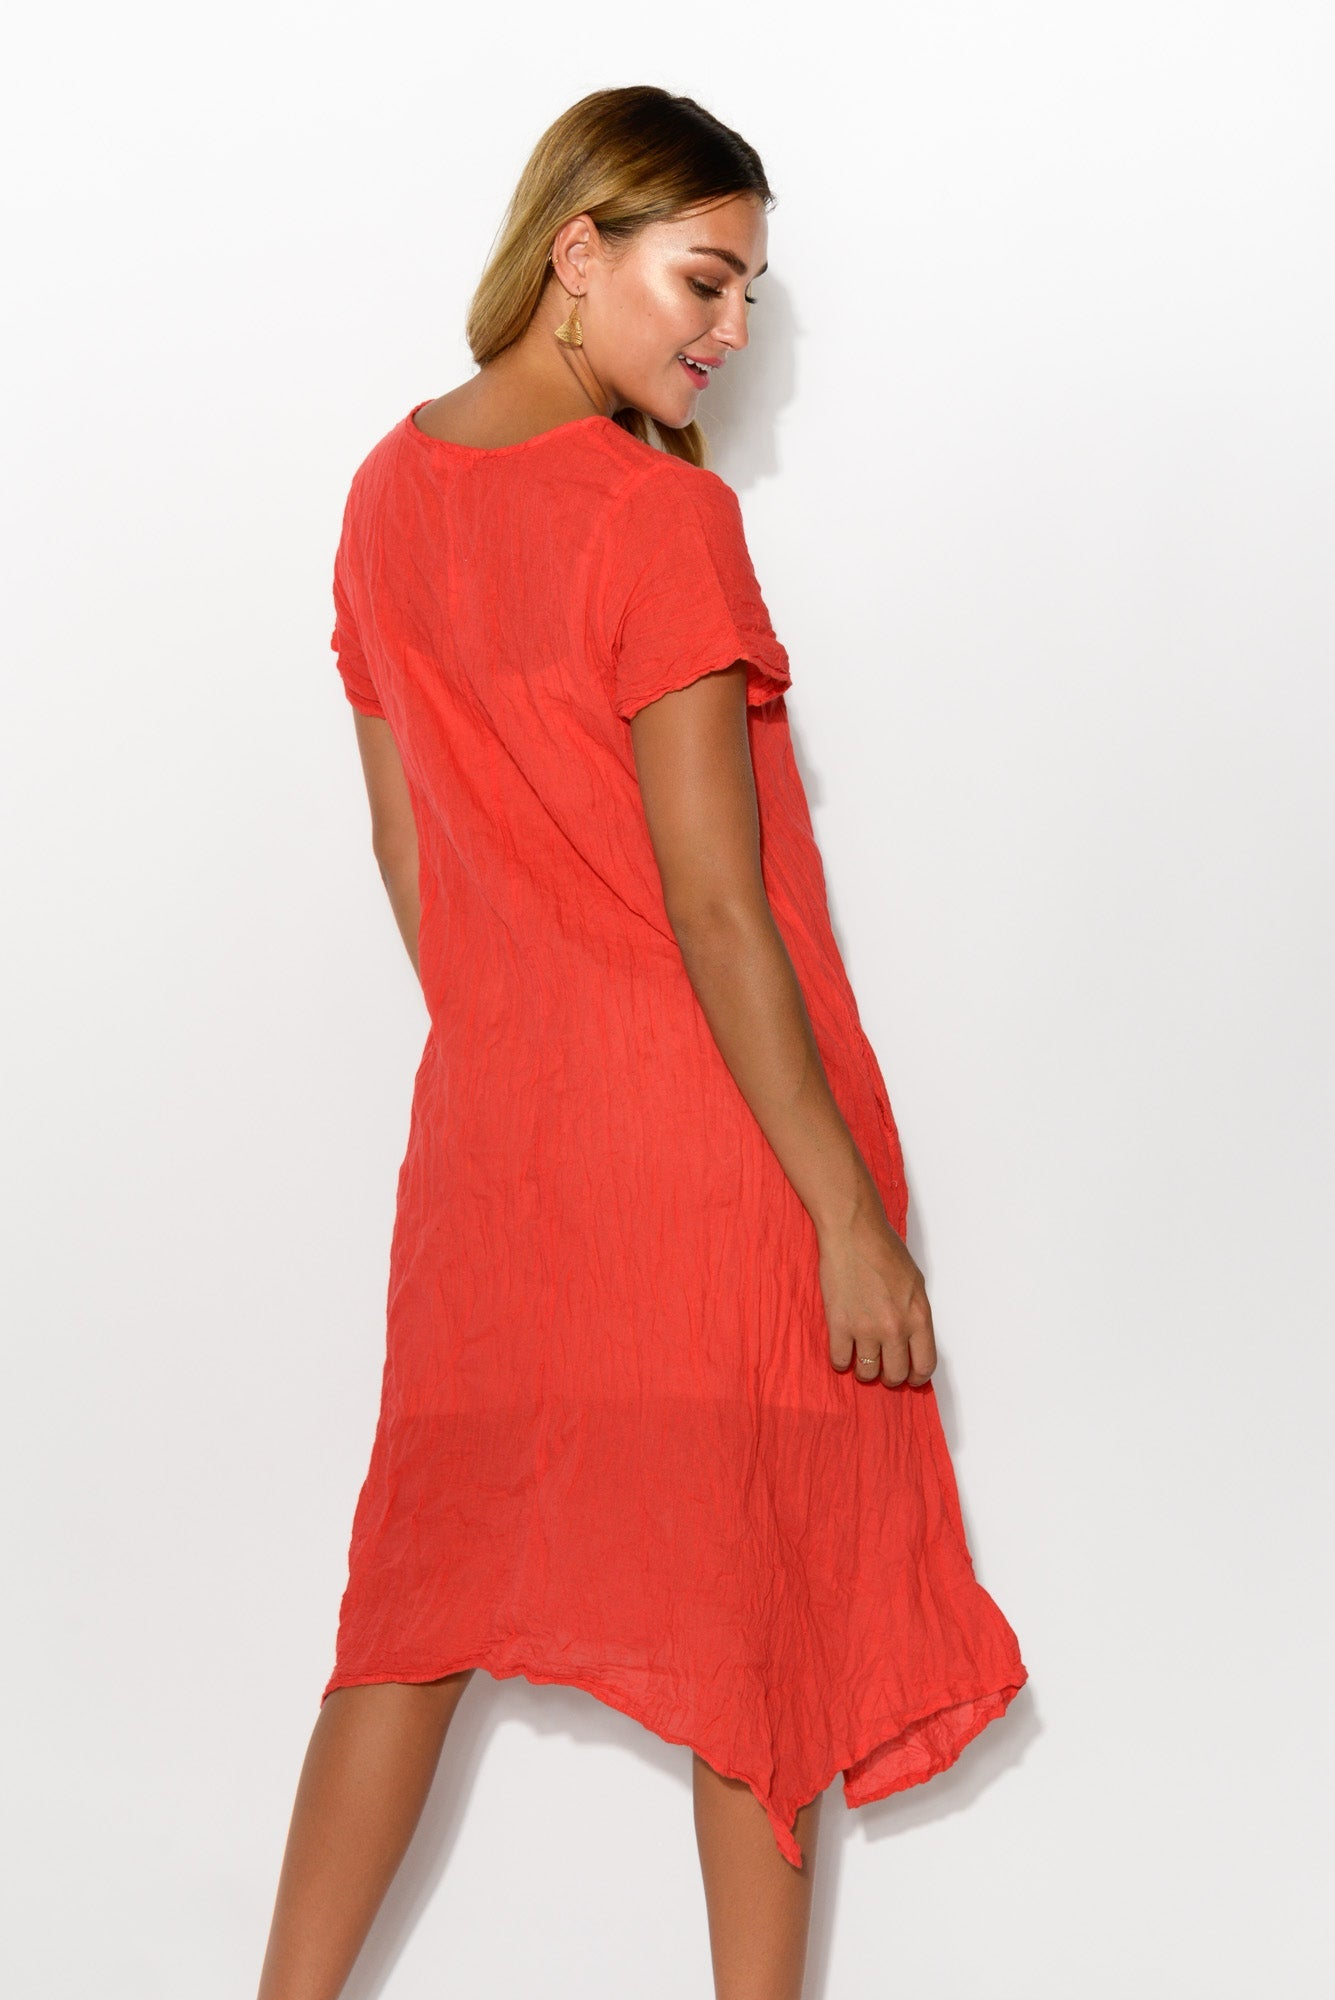 Claire Red Crinkle Cotton Dress - Namastai - Blue Bungalow Online